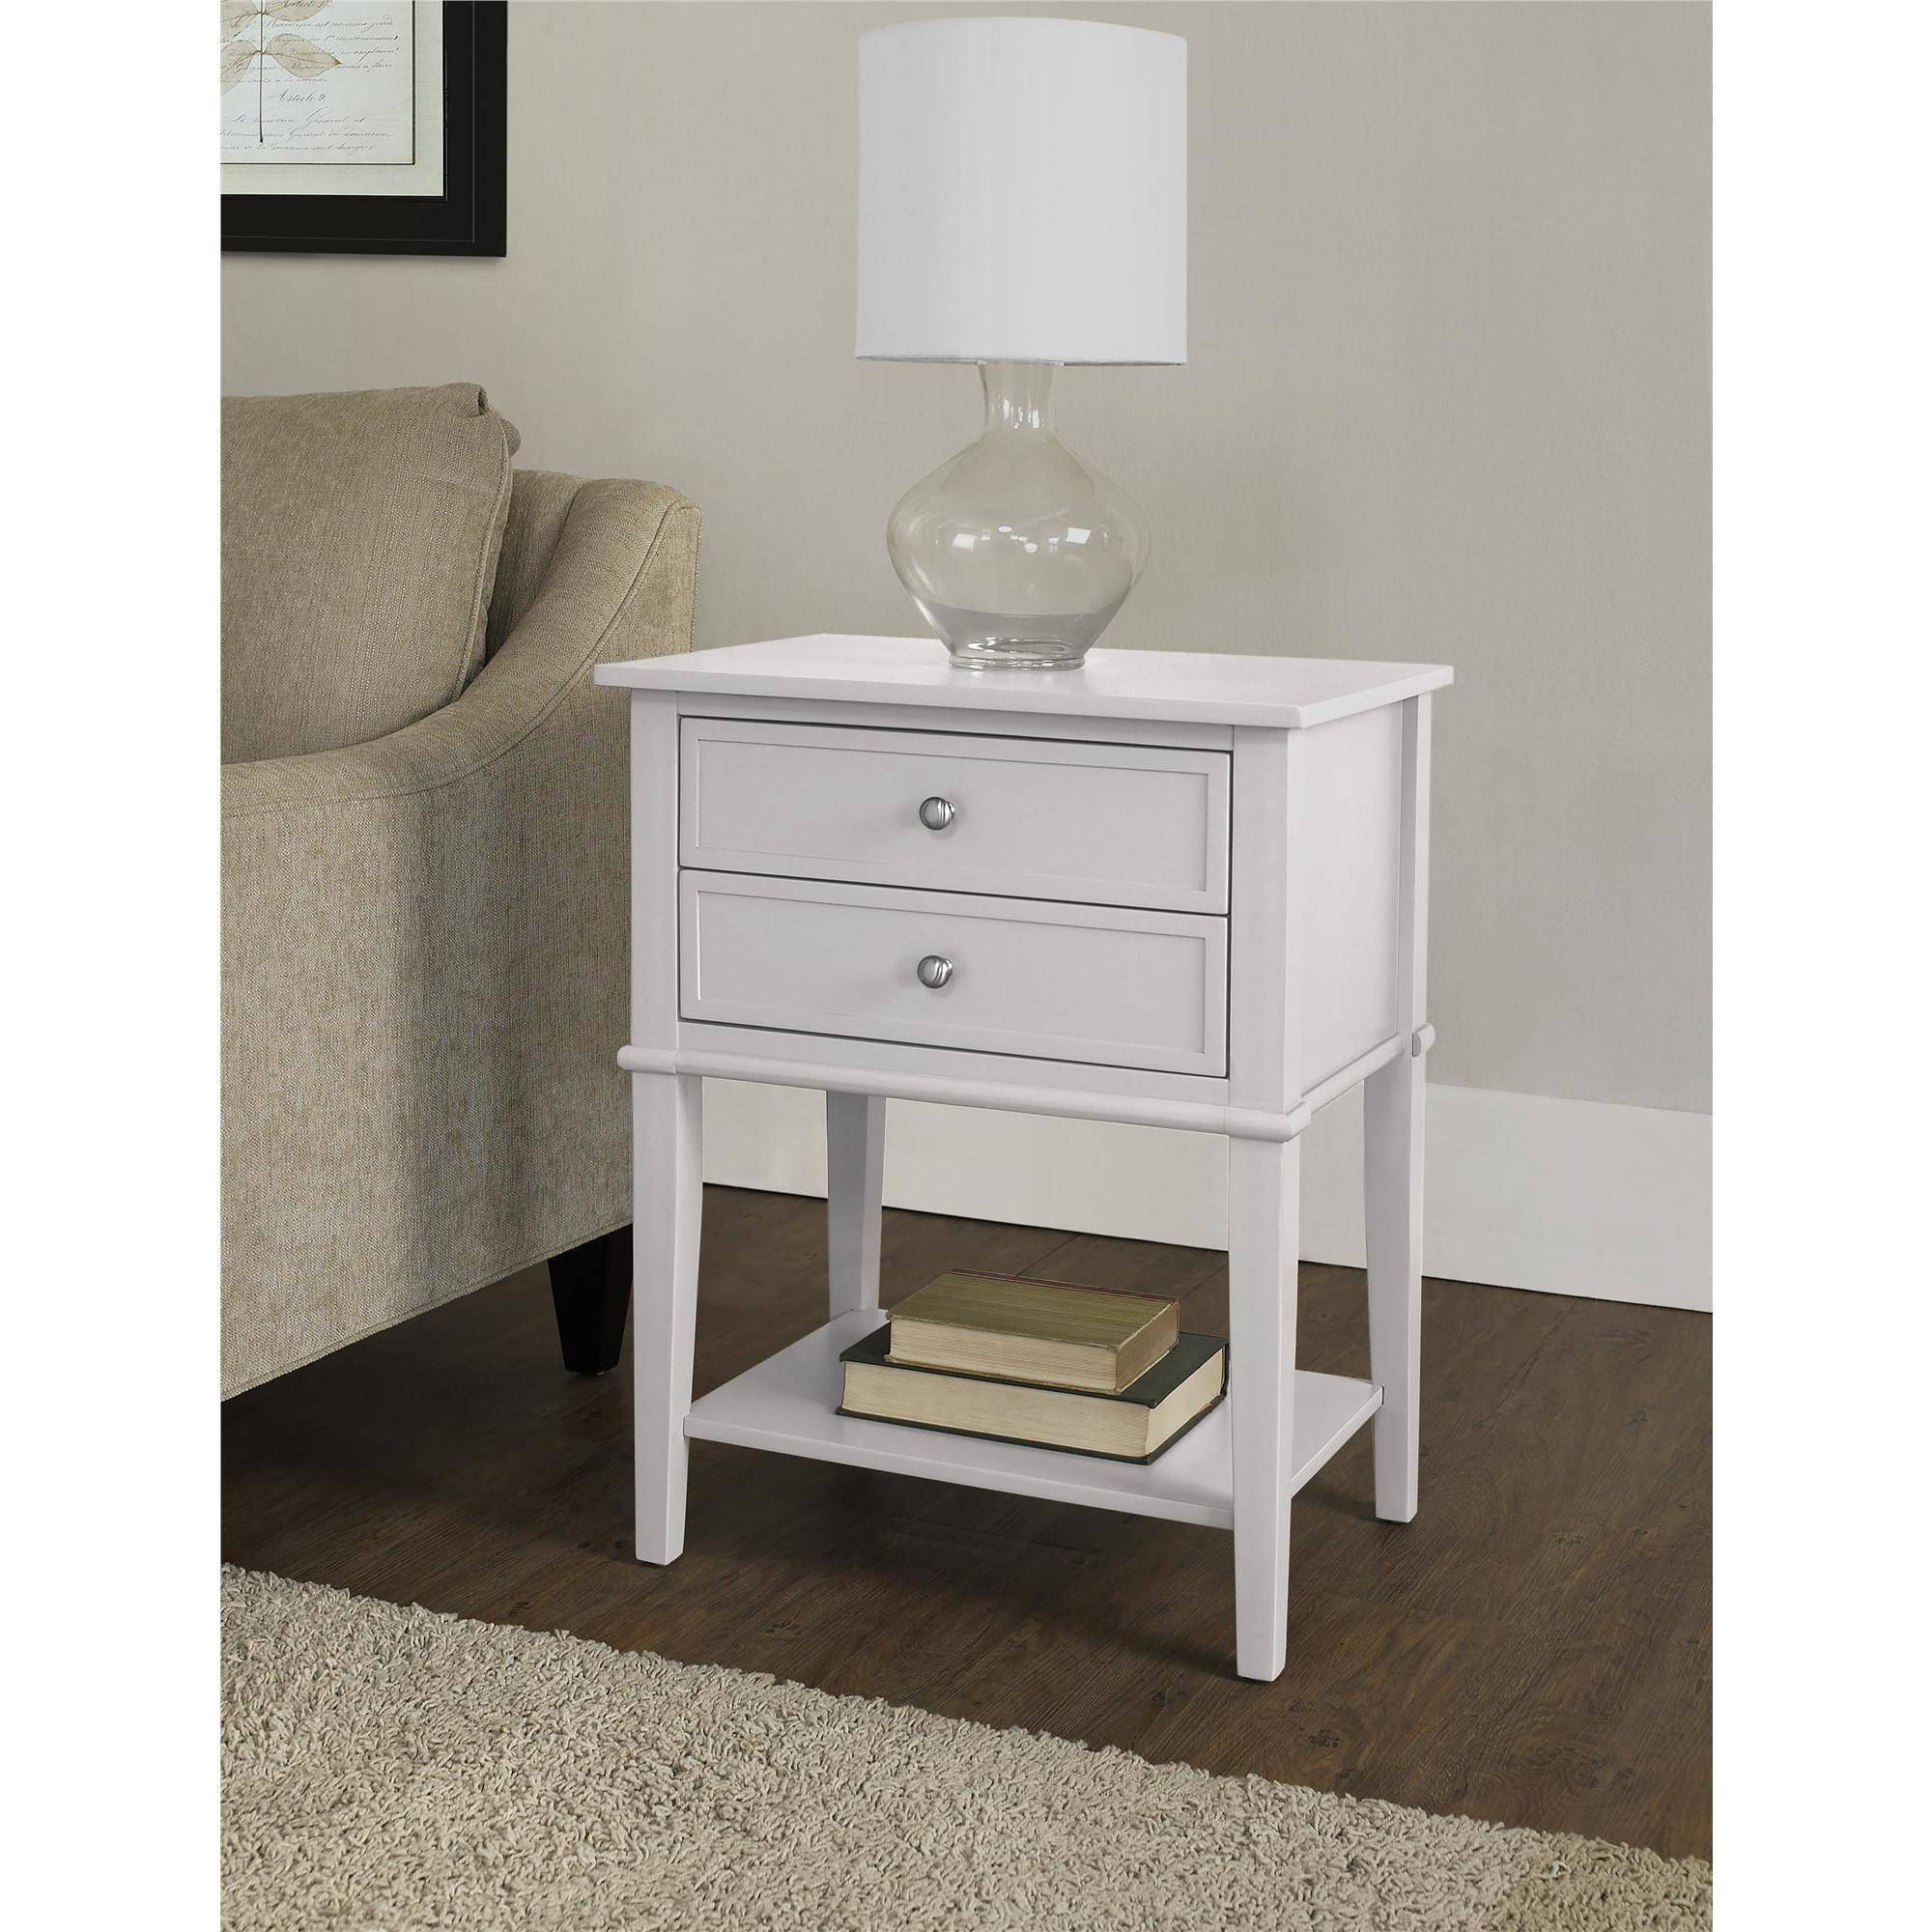 altra franklin accent table with drawers white end shelves multiple colors ture side casters sears sectionals round covers trundle sofa dining room wine rack inch tablecloth fits